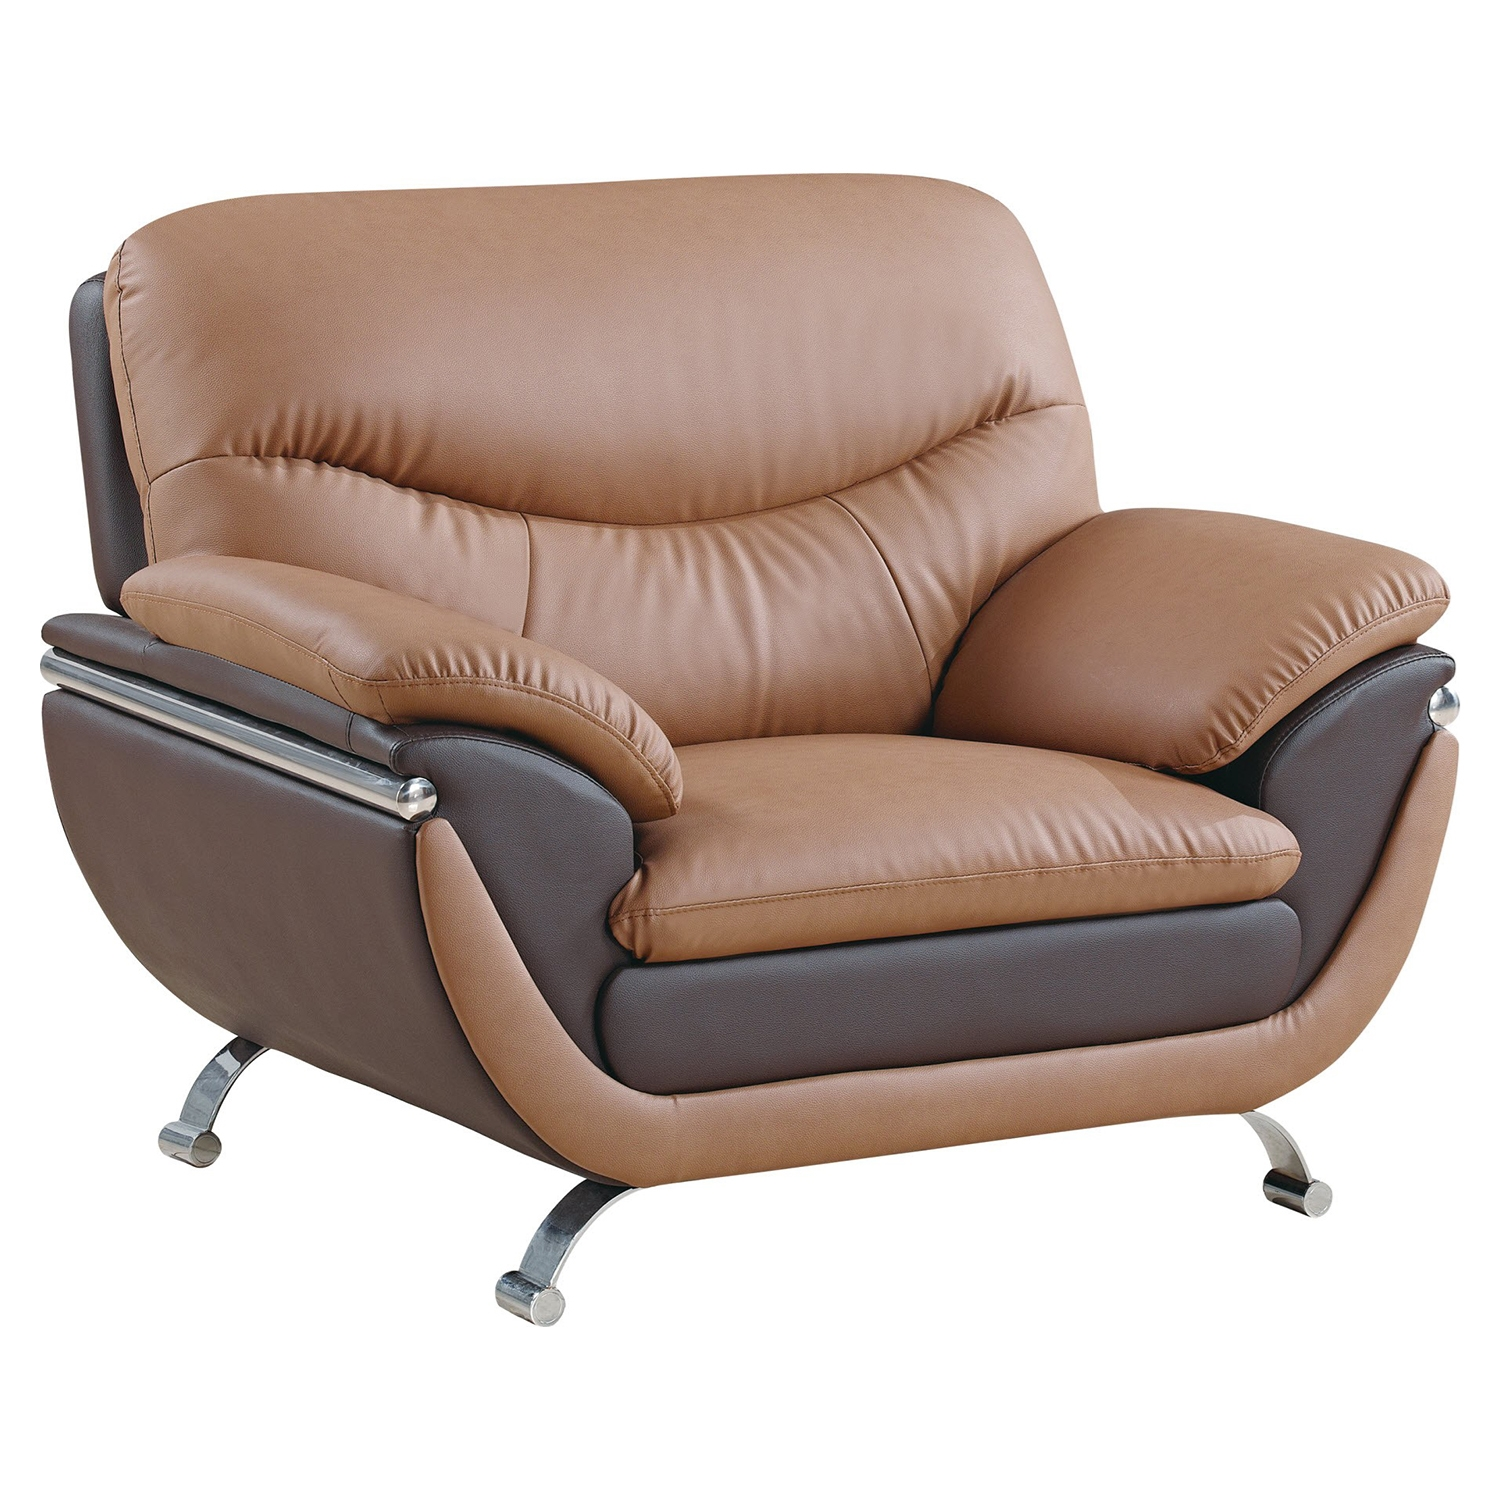 Chair  - Light Brown and Dark Brown Leather, Chrome Legs